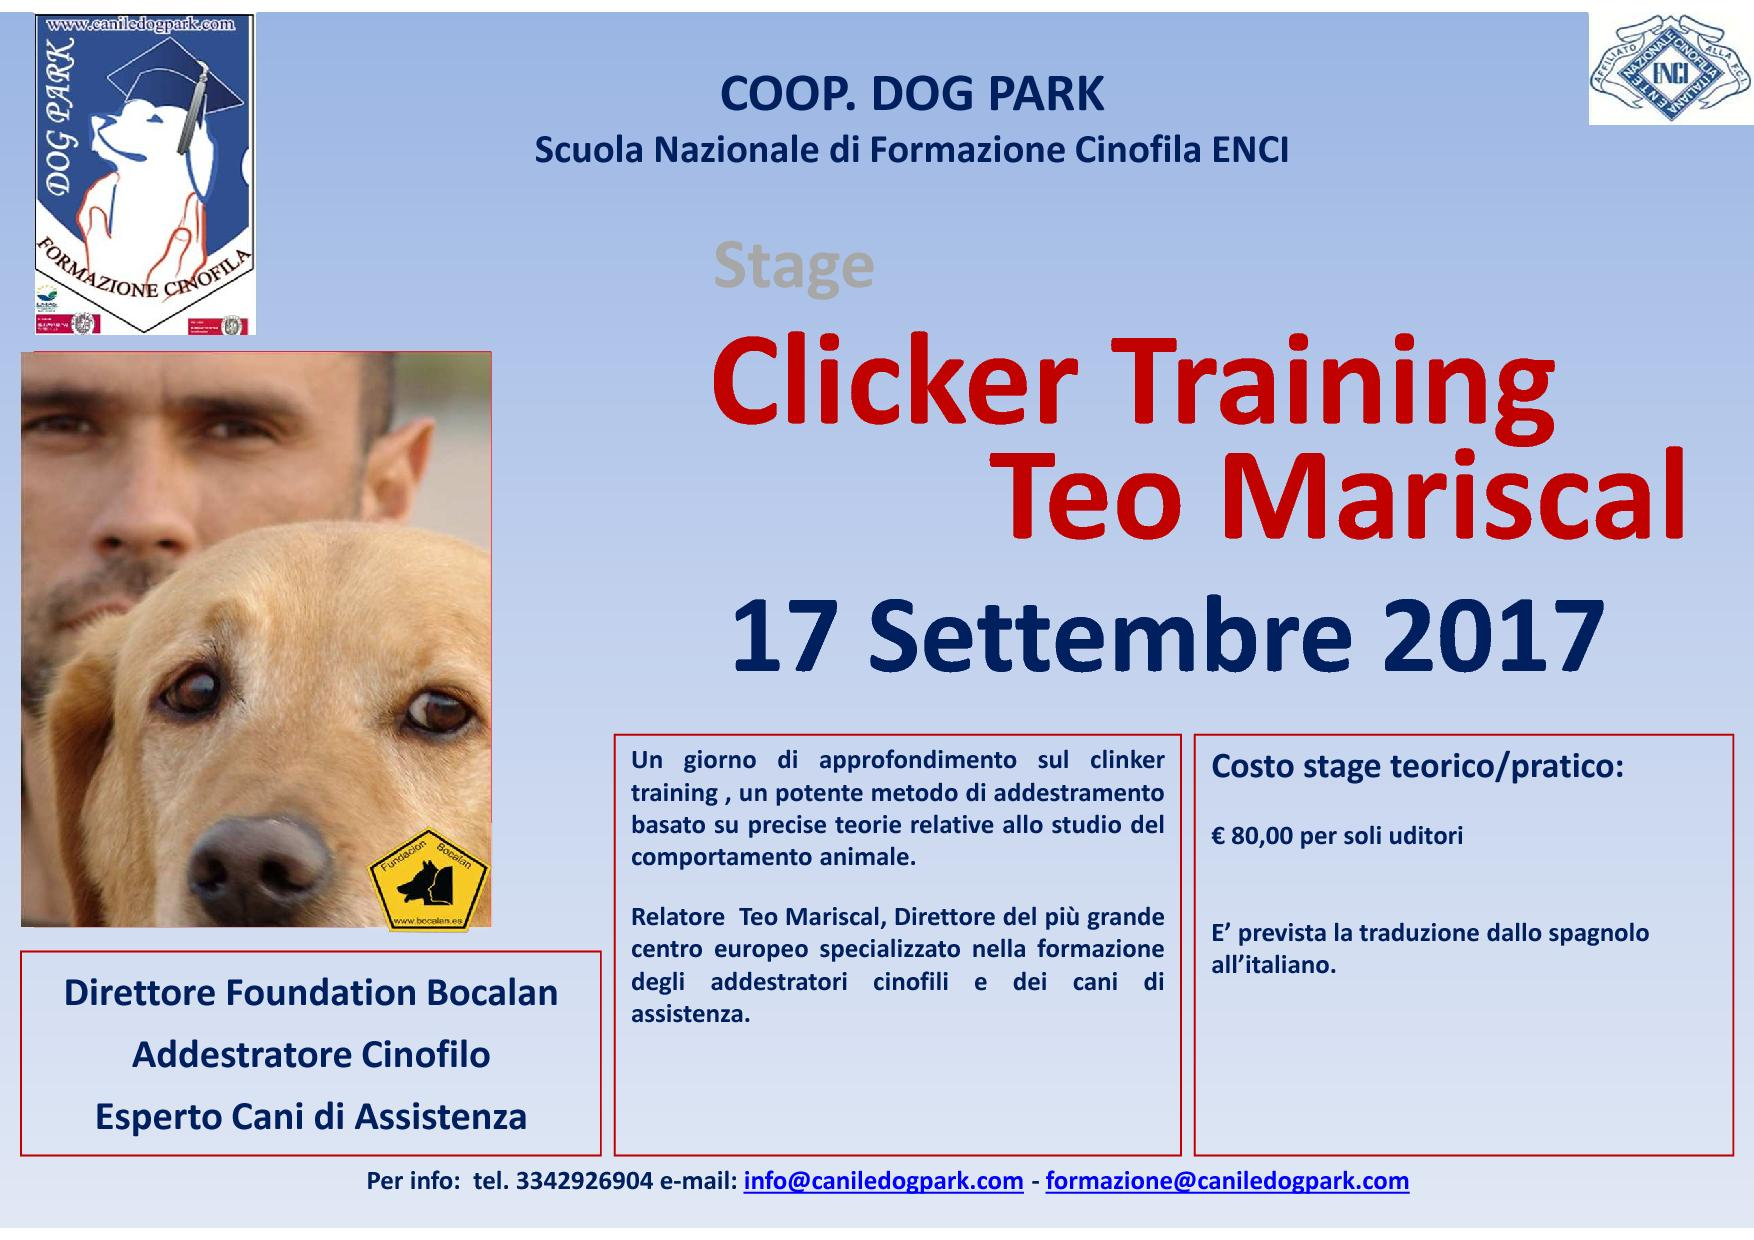 Clicker Training con Teo Mariscal